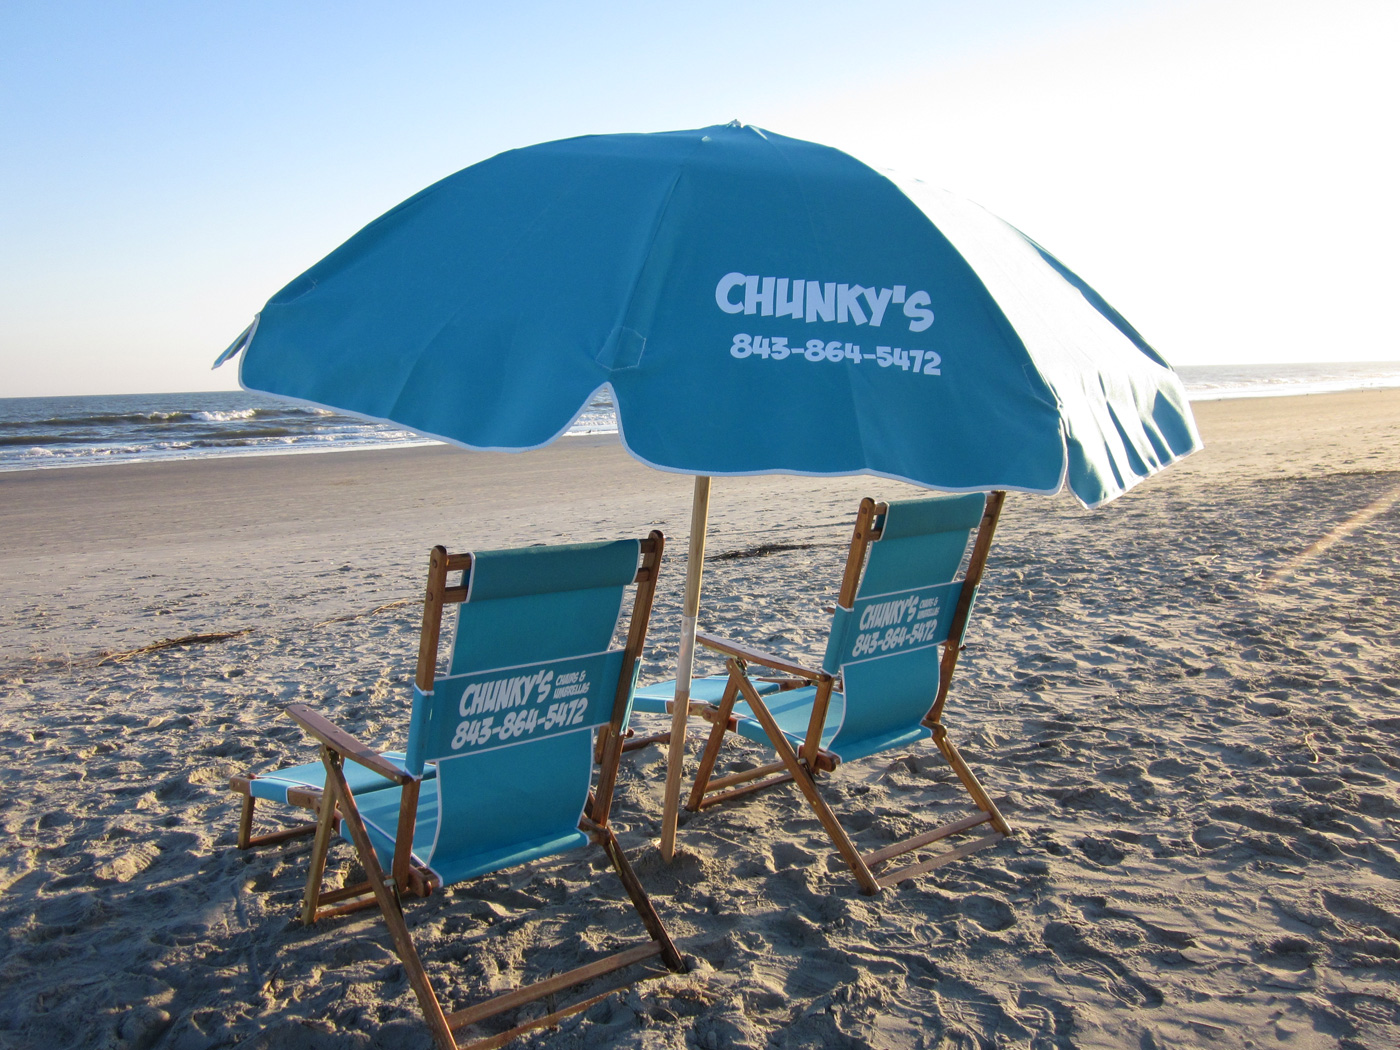 beach chair rental isle of palms leather executive office chairs canada chunky s and umbrellas umbrella rentals adult